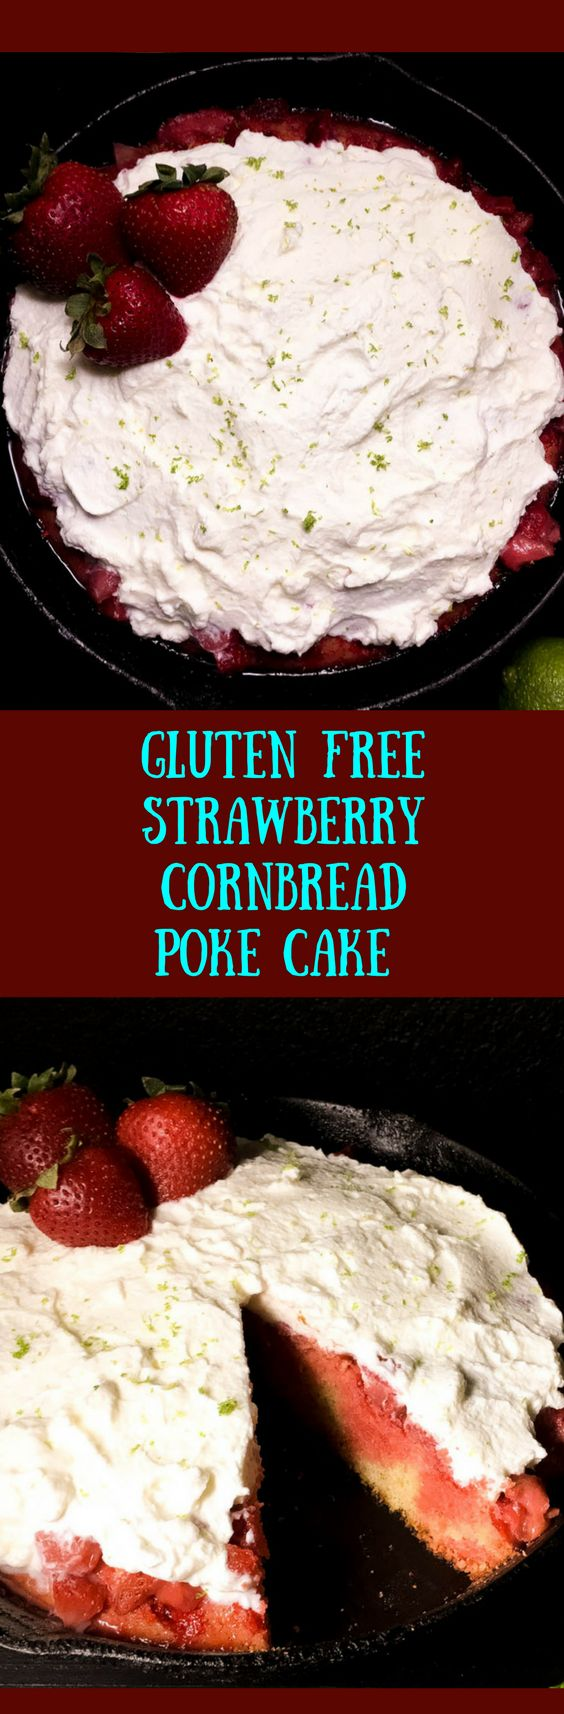 Homemade cornbread gets poked, filled with a strawberry Jello/water mixture, then topped with an easy homemade strawberry compote. After a couple of hours in the fridge, a simple homemade whipped cream topping puts the literal icing on this yum-delicious gluten free strawberry cornbread poke cake from A Sprinkling of Cayenne. | http://asprinklingofcayenne.com/gluten-free-strawberry-cornbread-poke-cake/